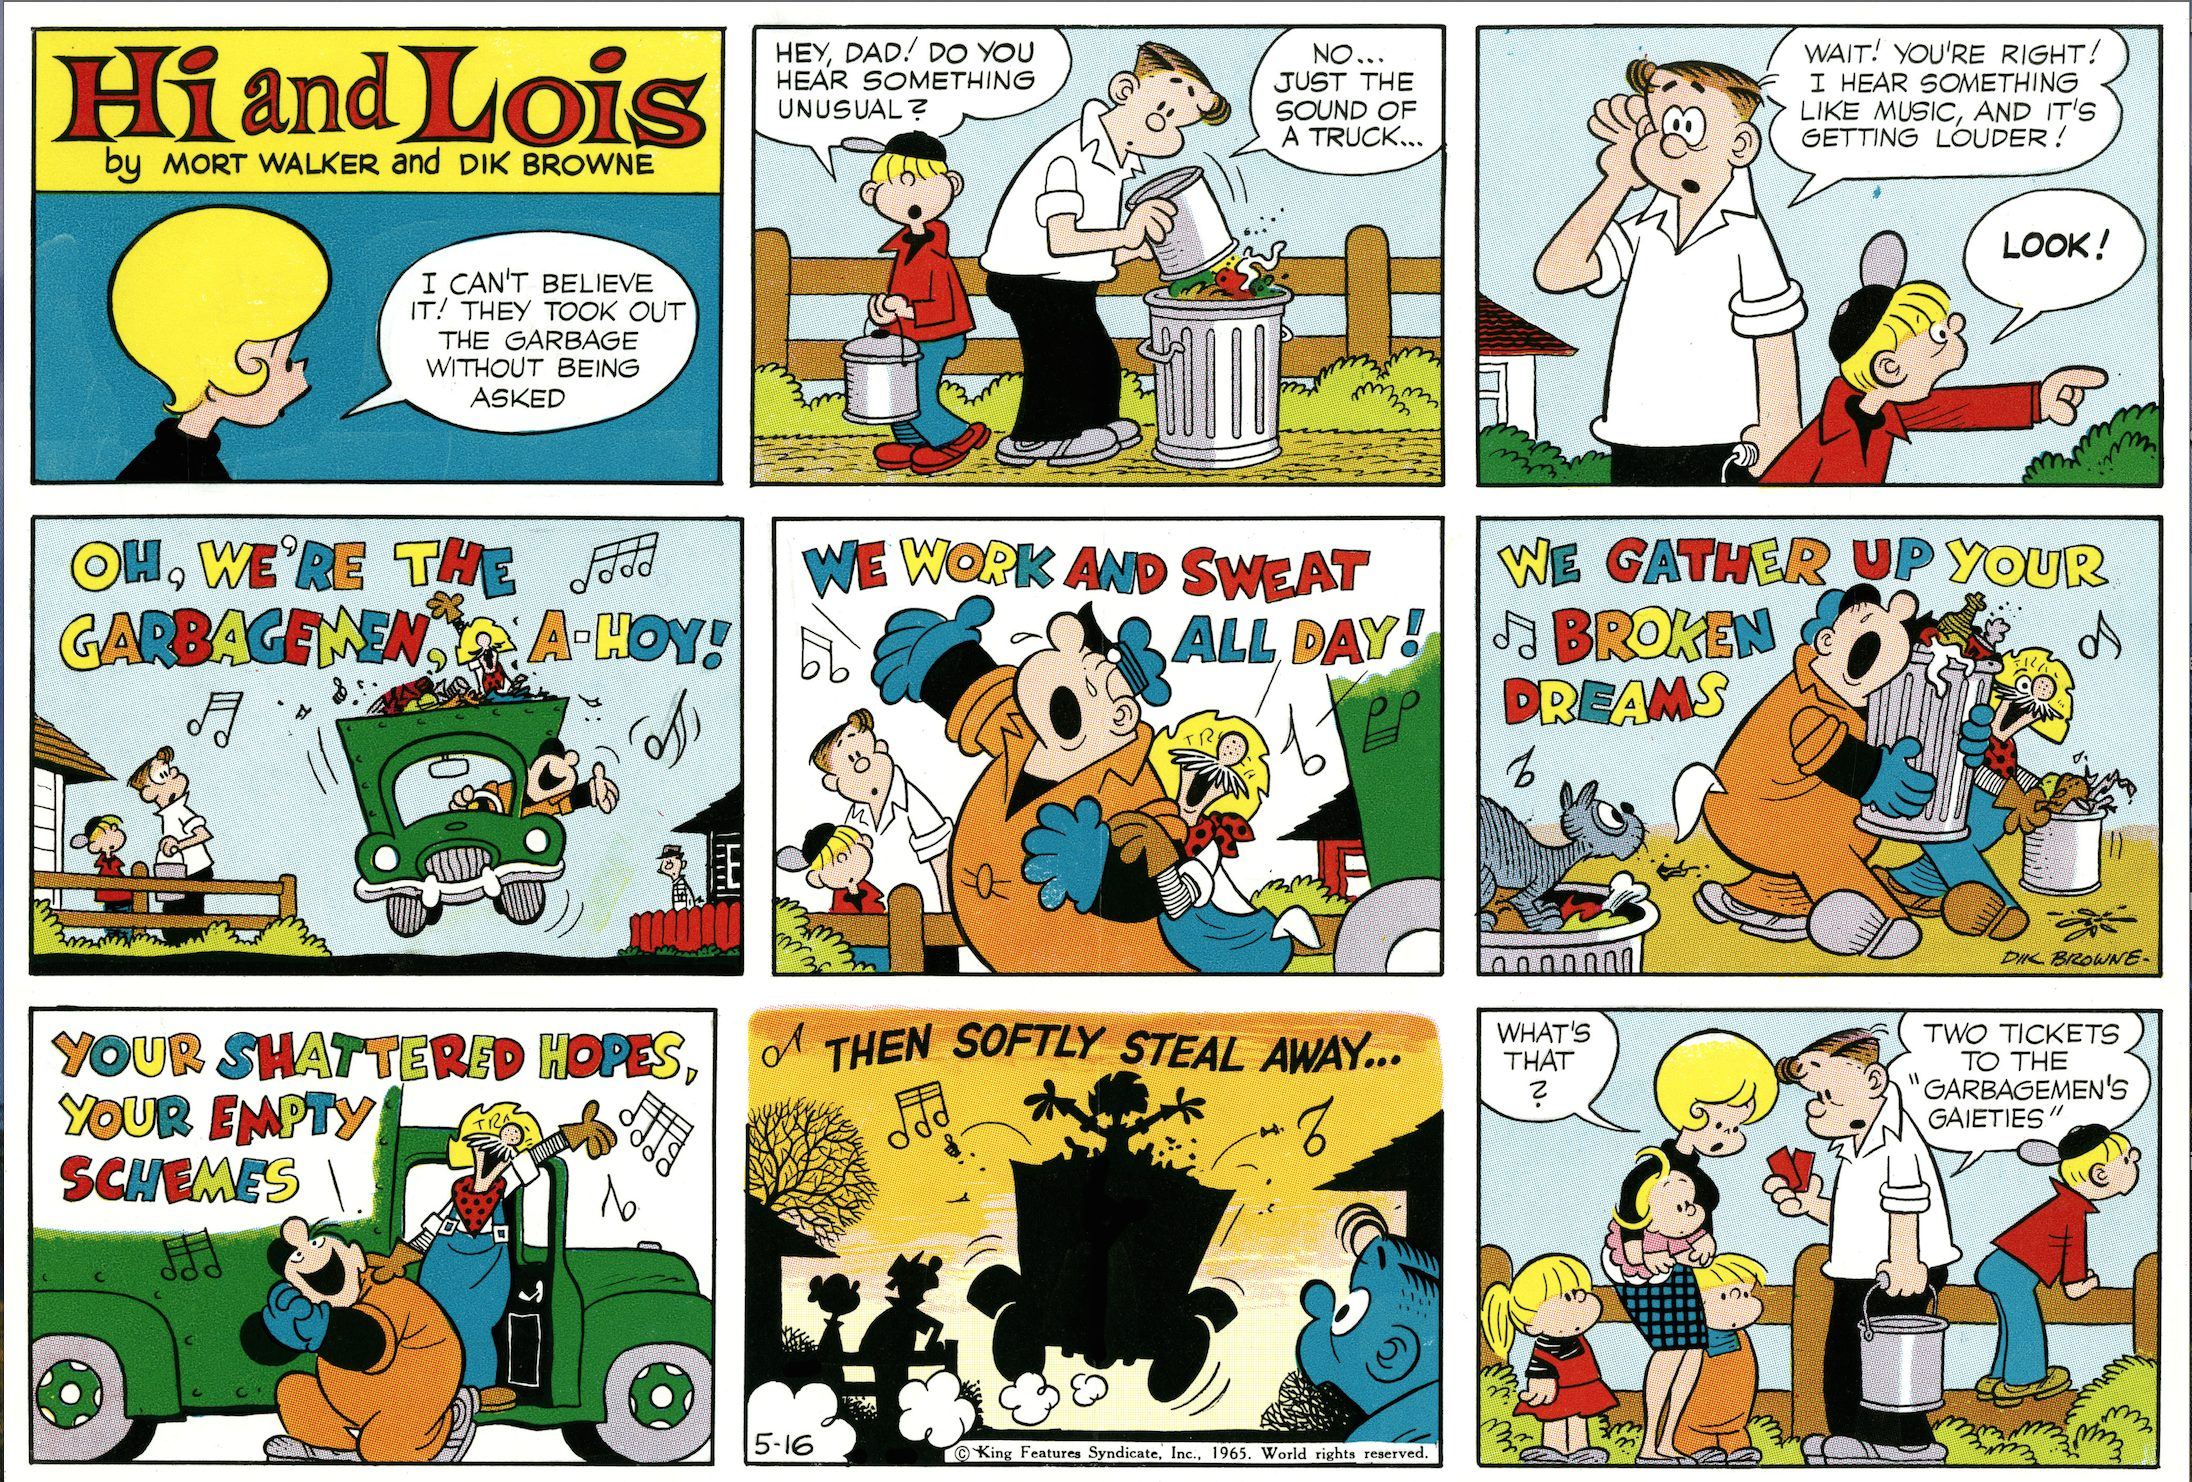 Hi and Lois Sunday page color proof, May 16, 1965.